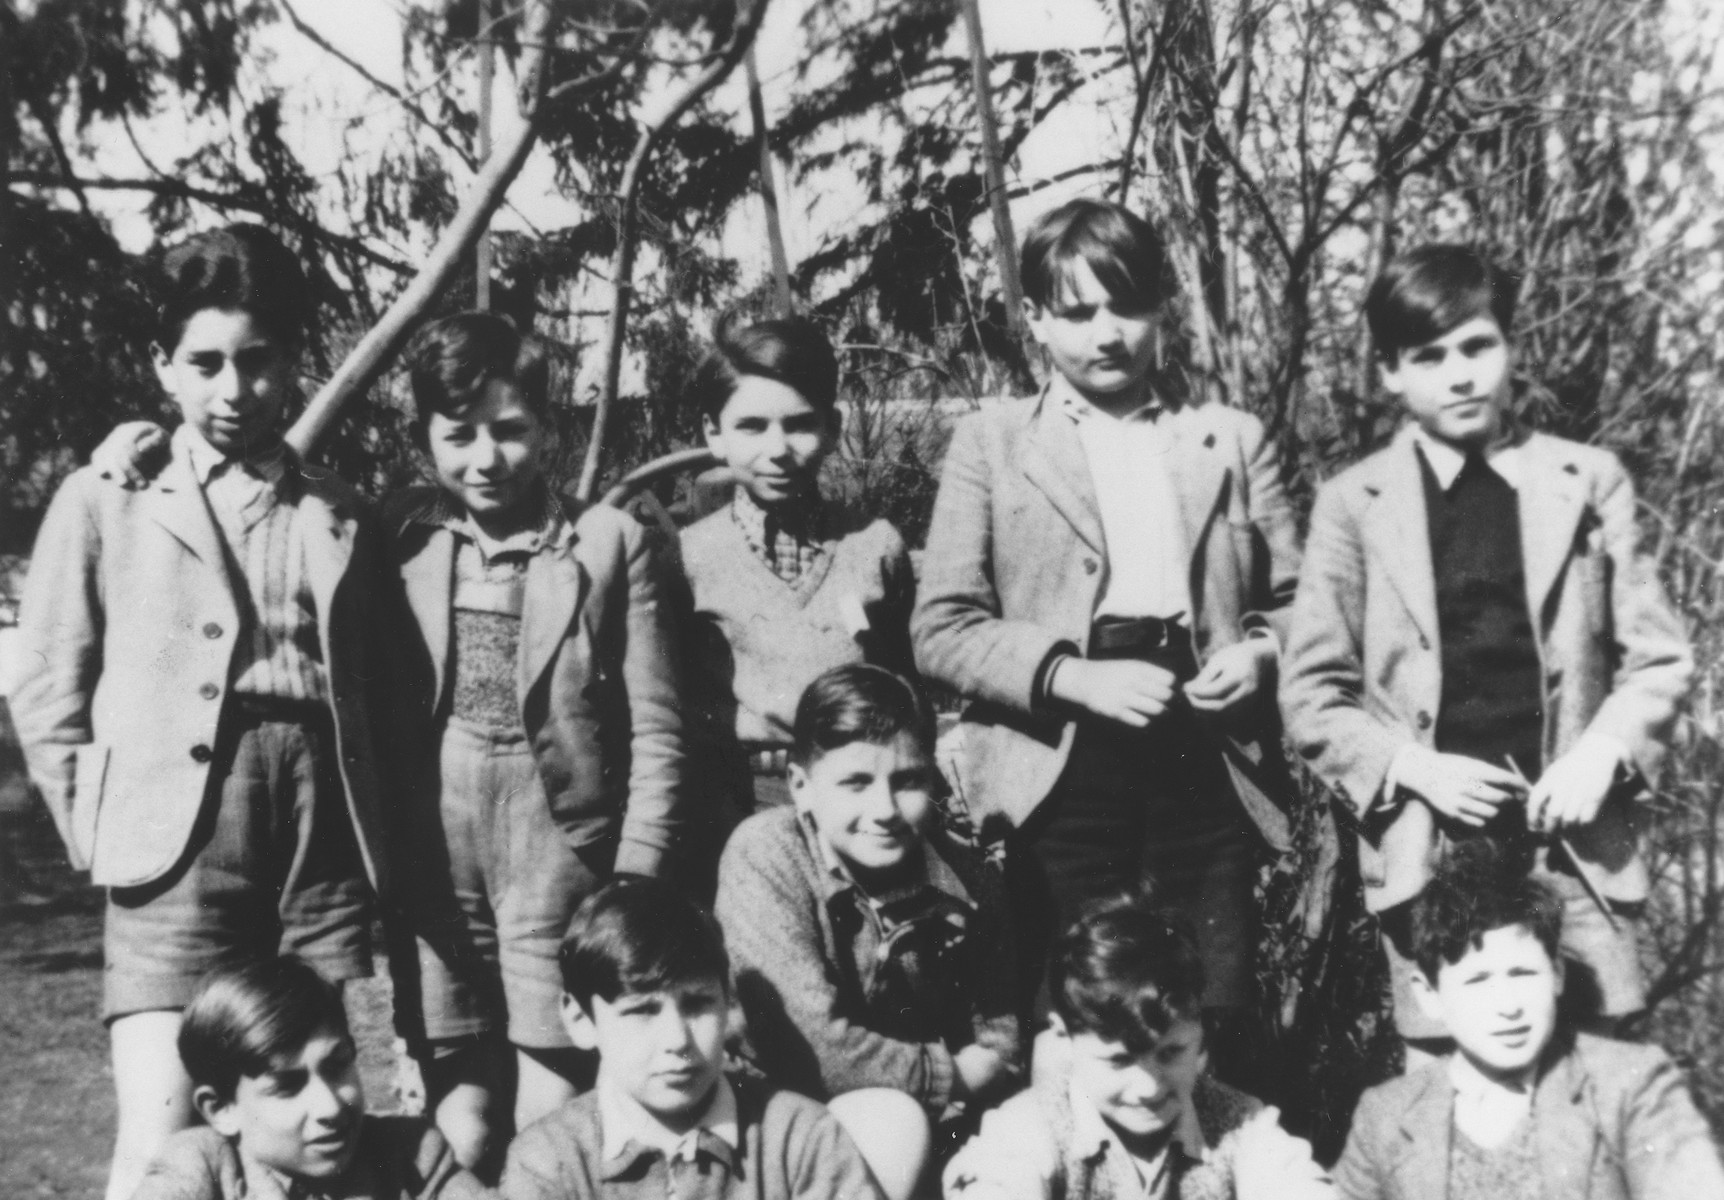 Group portrait of Jewish refugee boys who came to France on a Kindertransport from Germany.  Pictured in the front row, from left to right, are: Sali Obernicker, Hörst Wolff, Henry Rettig, Ivan Rose, and Hörst Cahn.  In the second row are Adi Kimmelfeld, Hans Stern, Pierre Marcuse, Gert Alexander and Siegfried Knop.